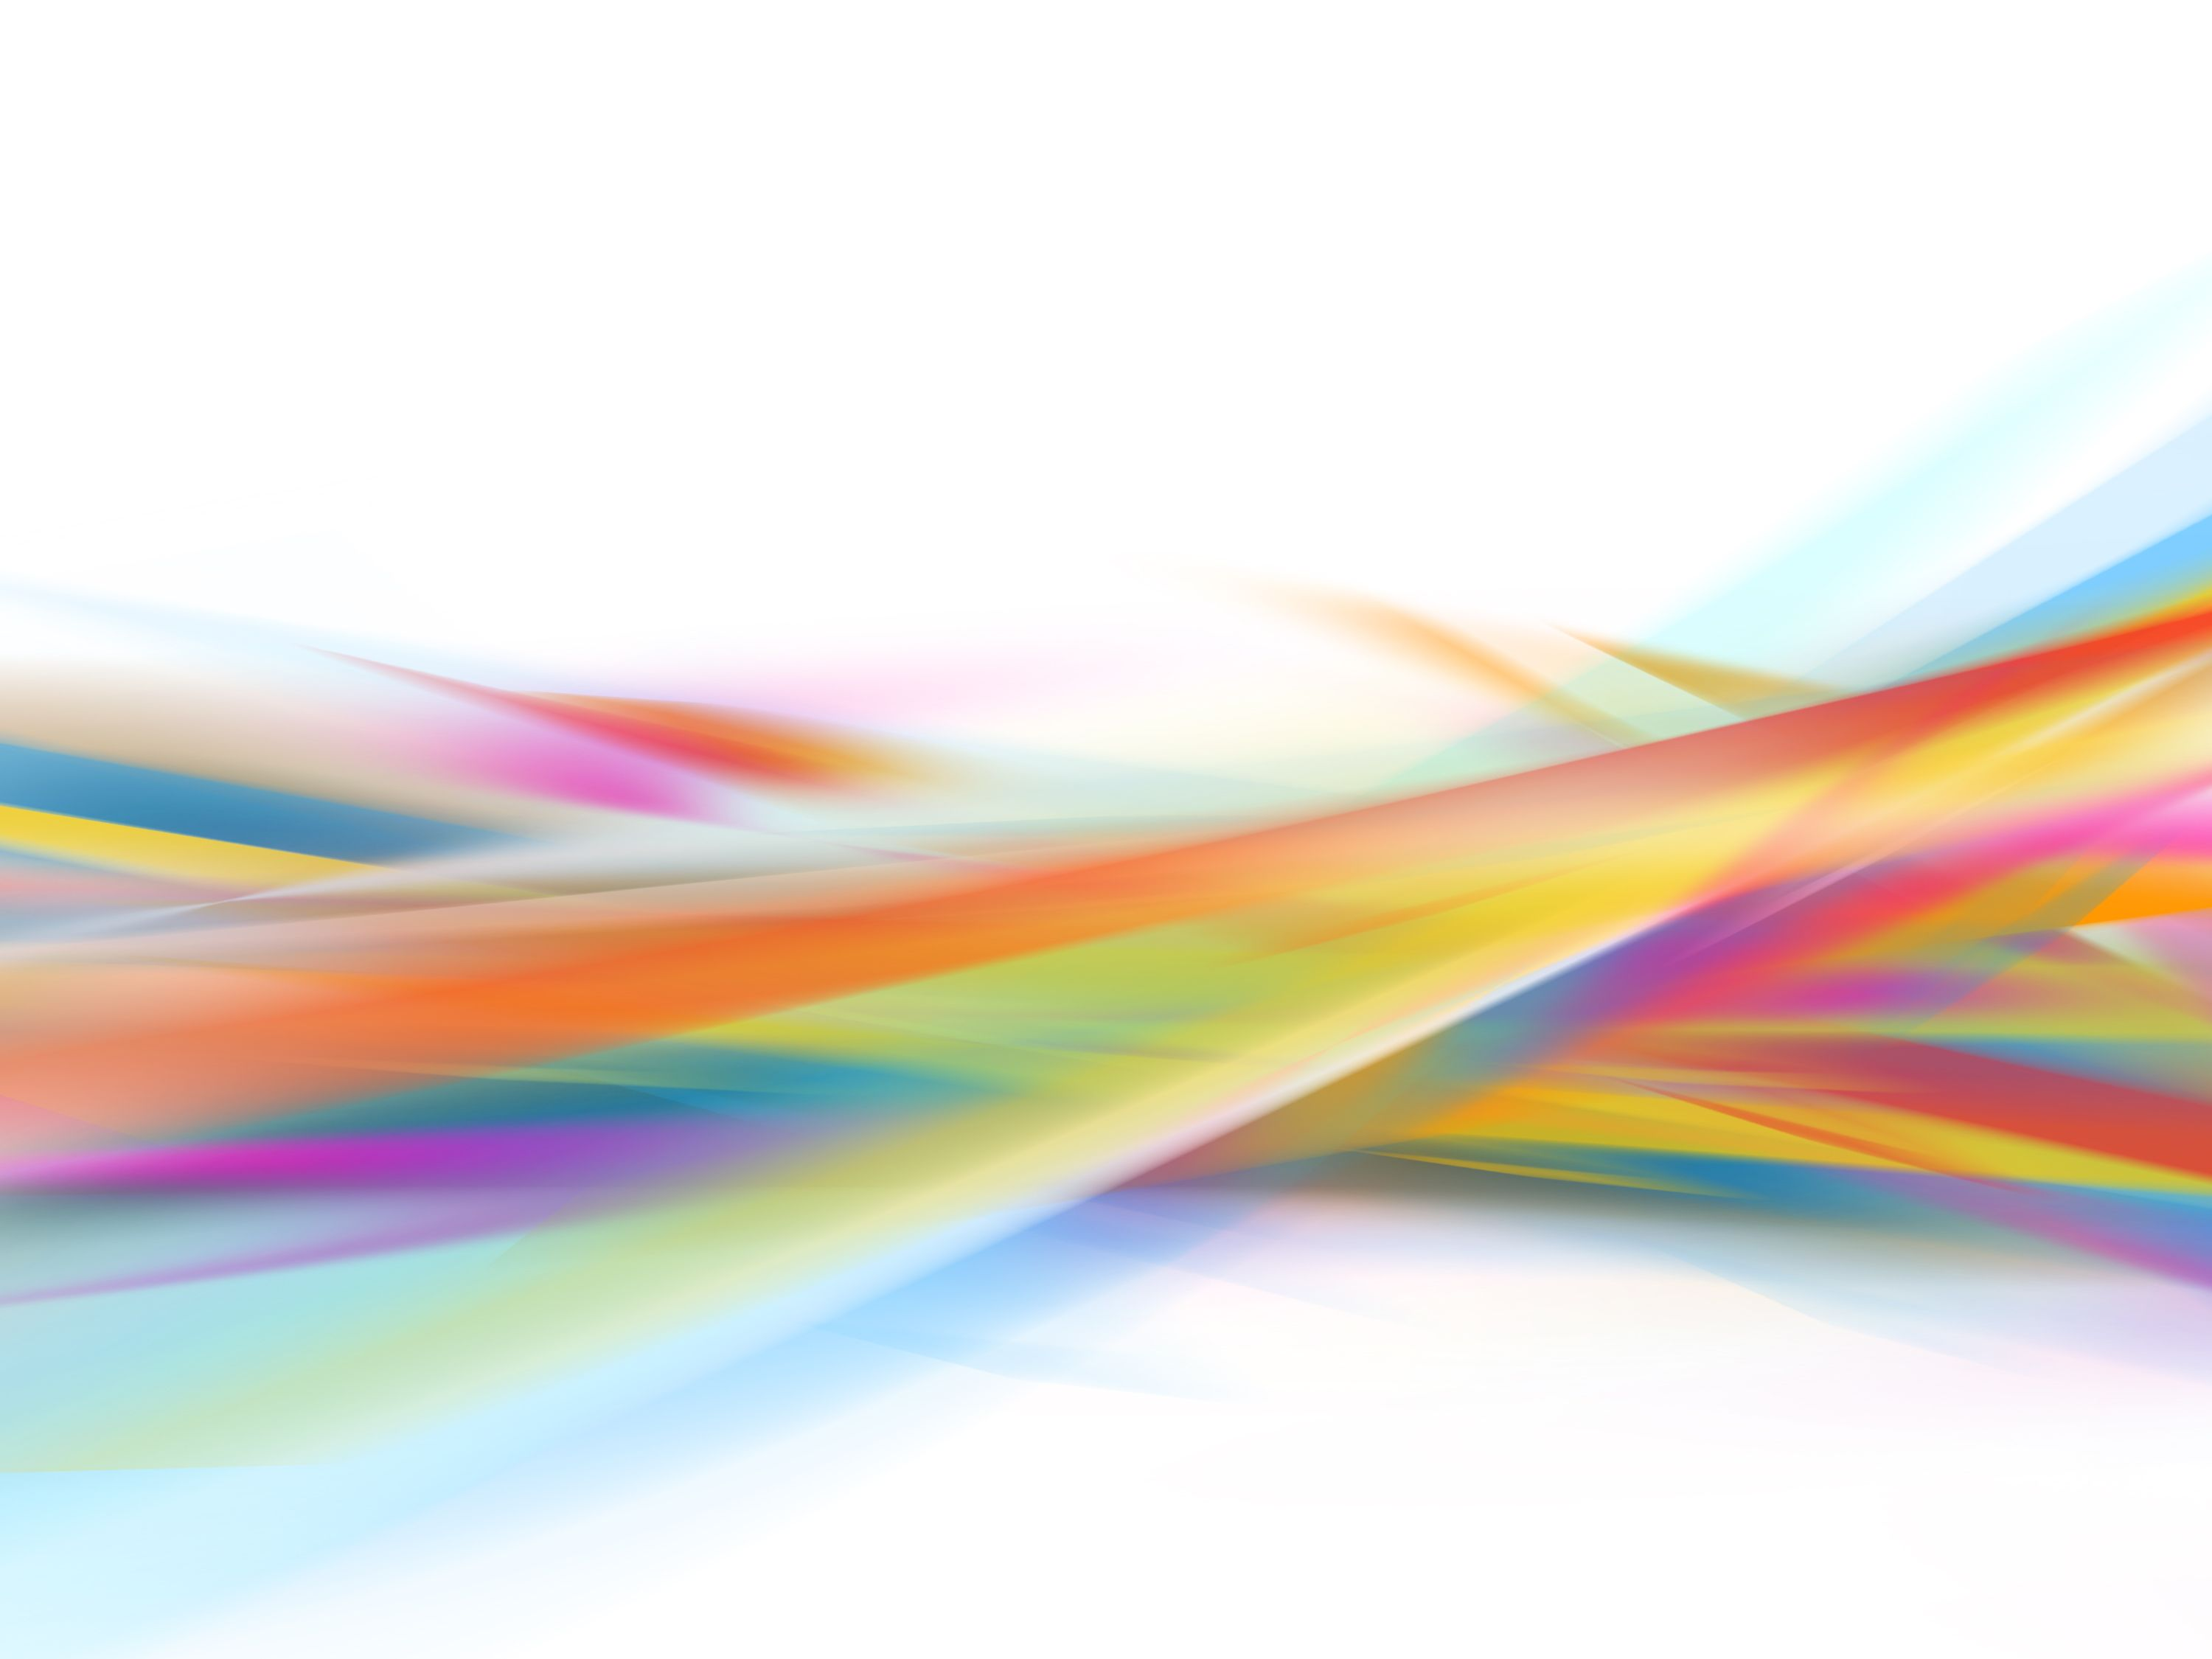 Abstract Vector Hd Widescreen 11 HD Wallpapers.